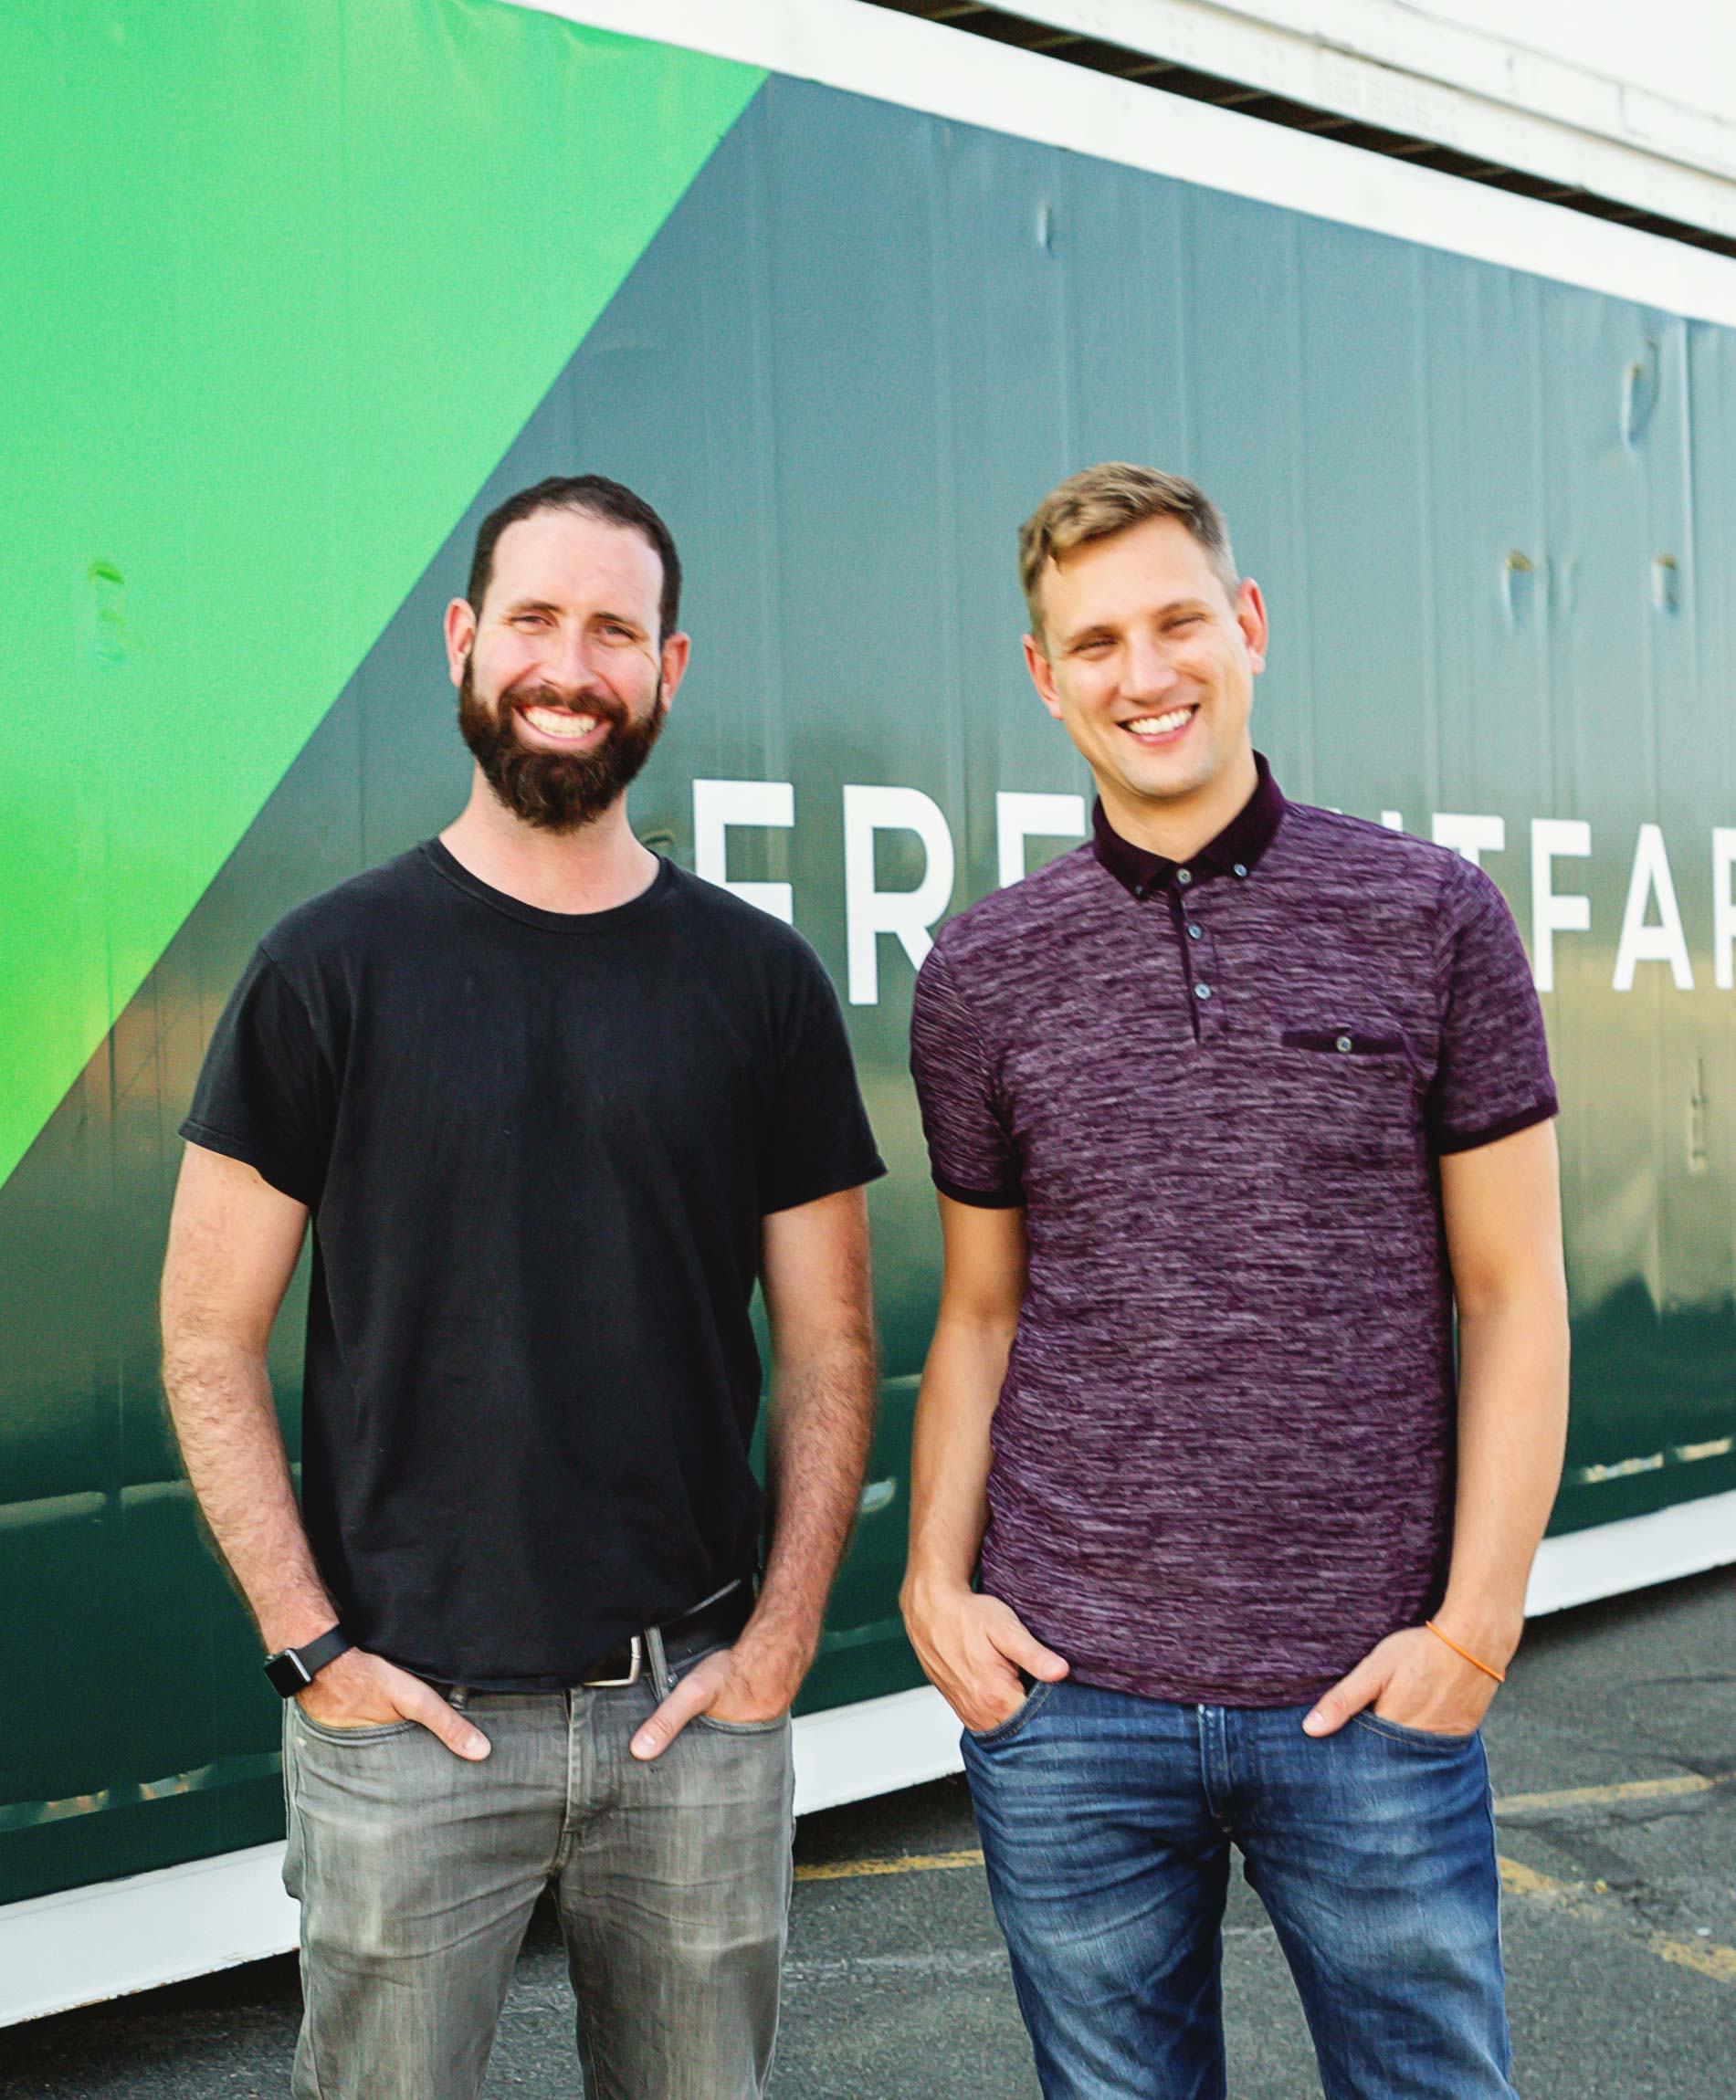 Co-founders Brad McNamara (left) and Jon Friedman (right) at Freight Farms headquarters in Boston, MA.